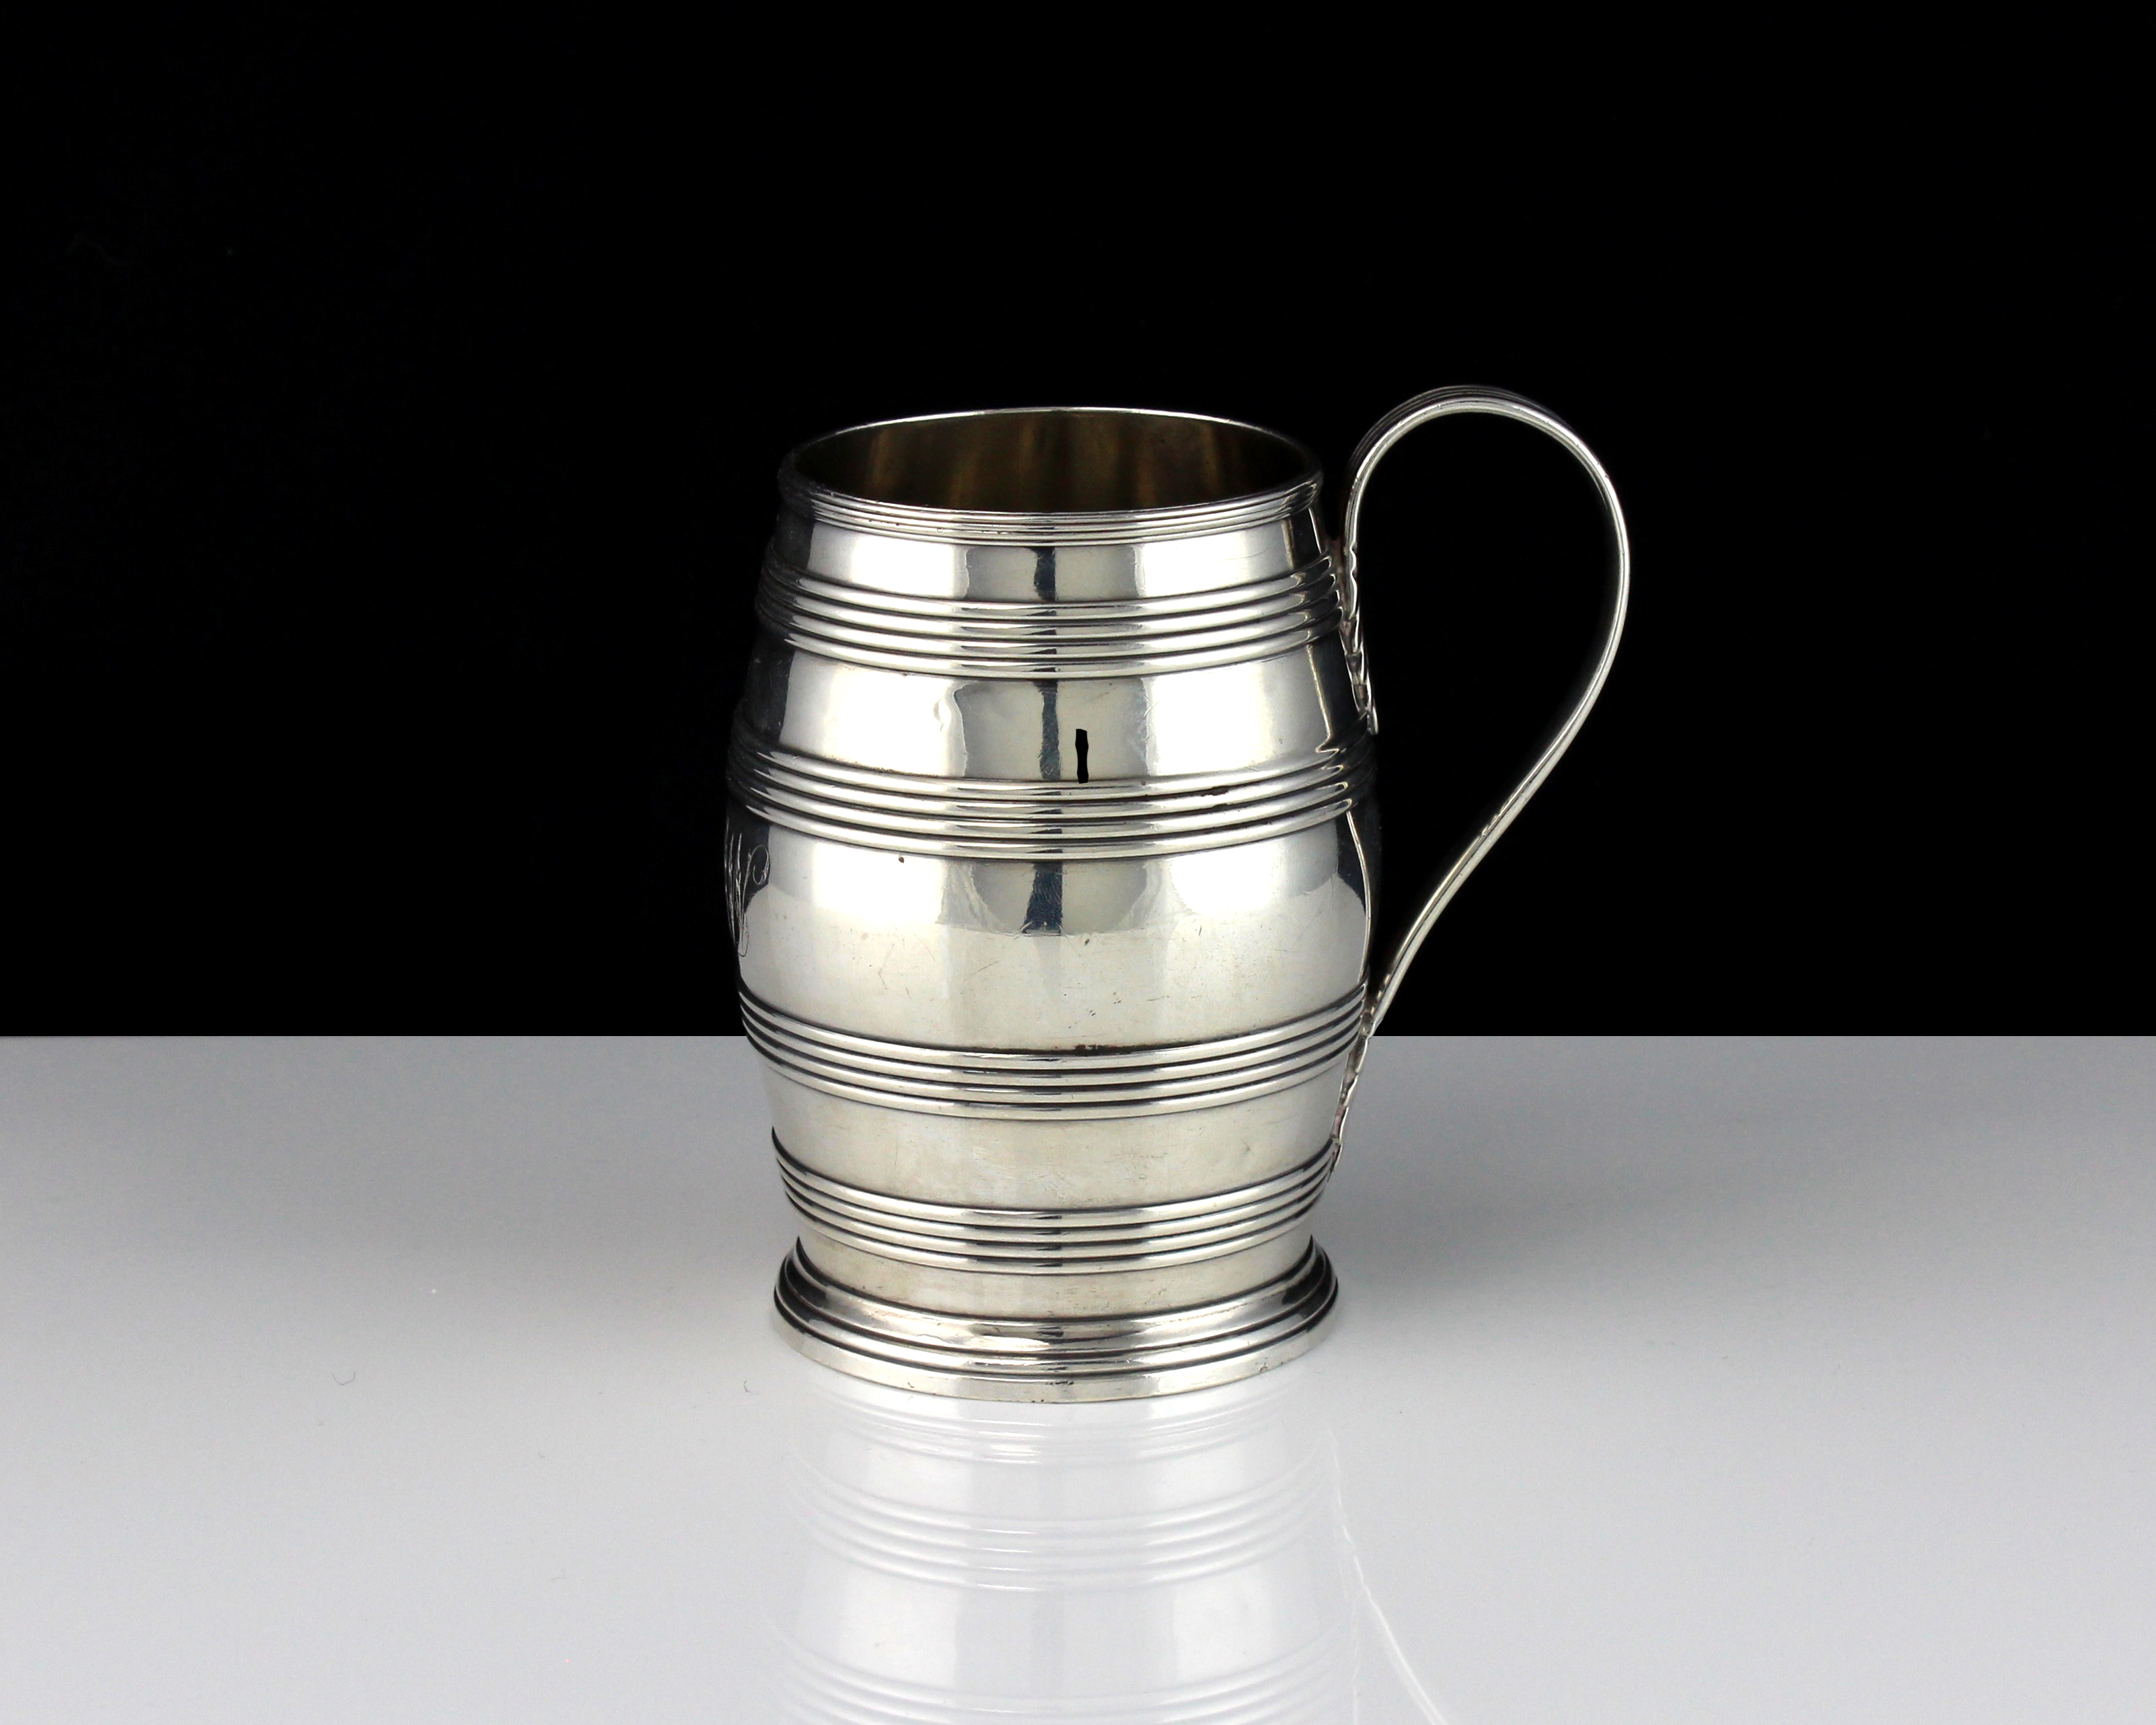 An antique George III Sterling Silver barrel mug by John Robins, London 1783 designed in the form of